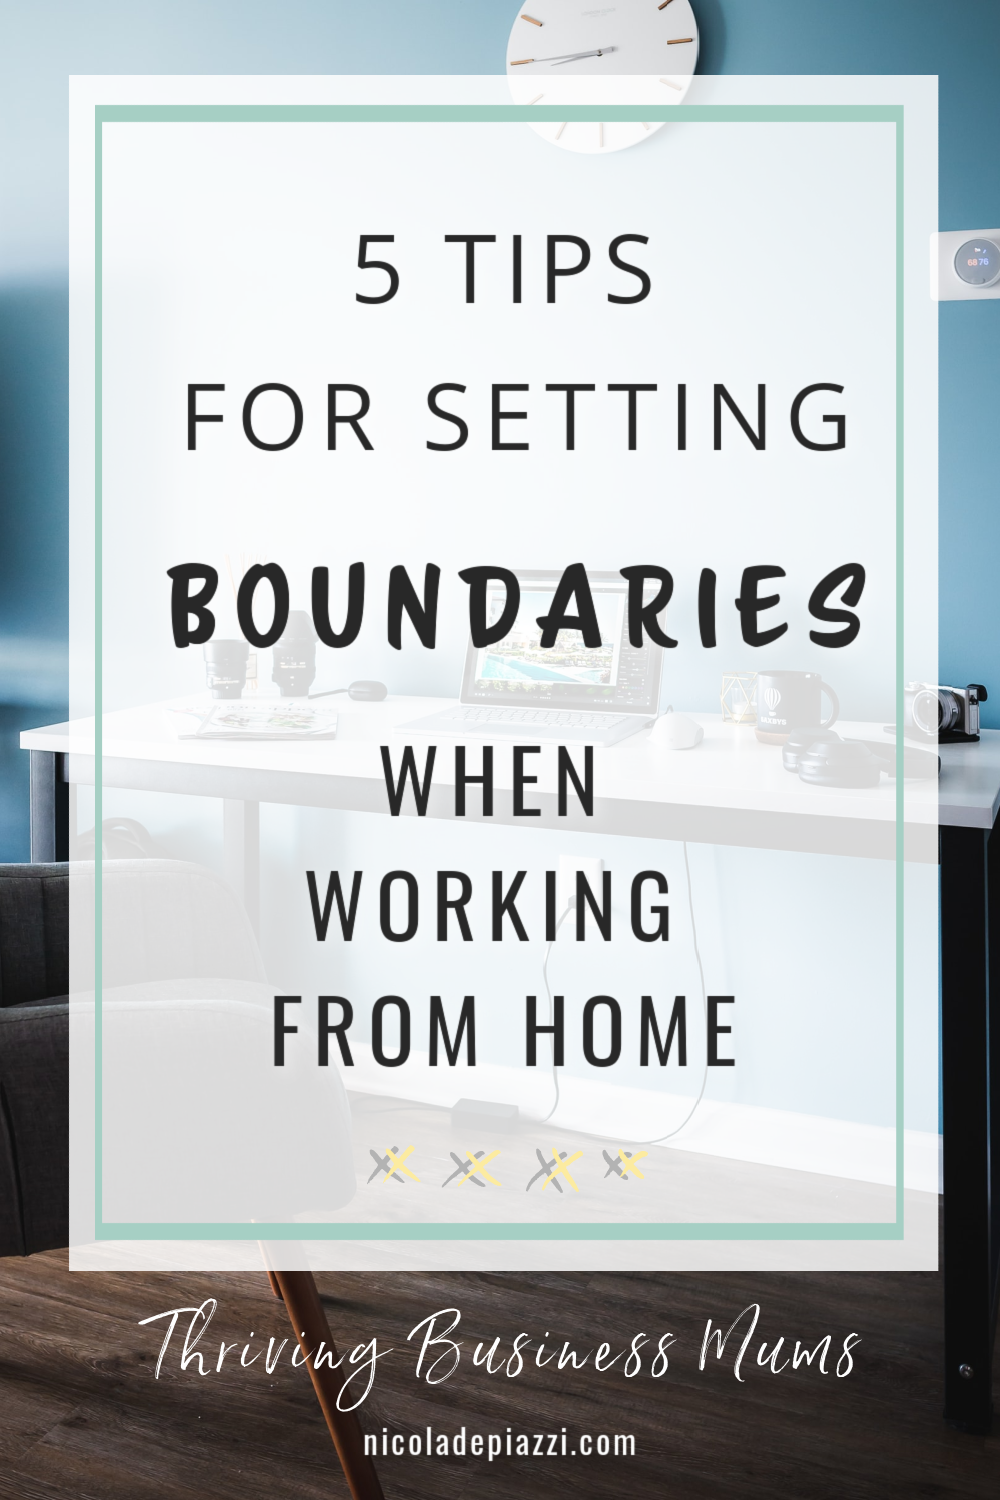 5 TIPS FOR SETTING BOUNDARIES